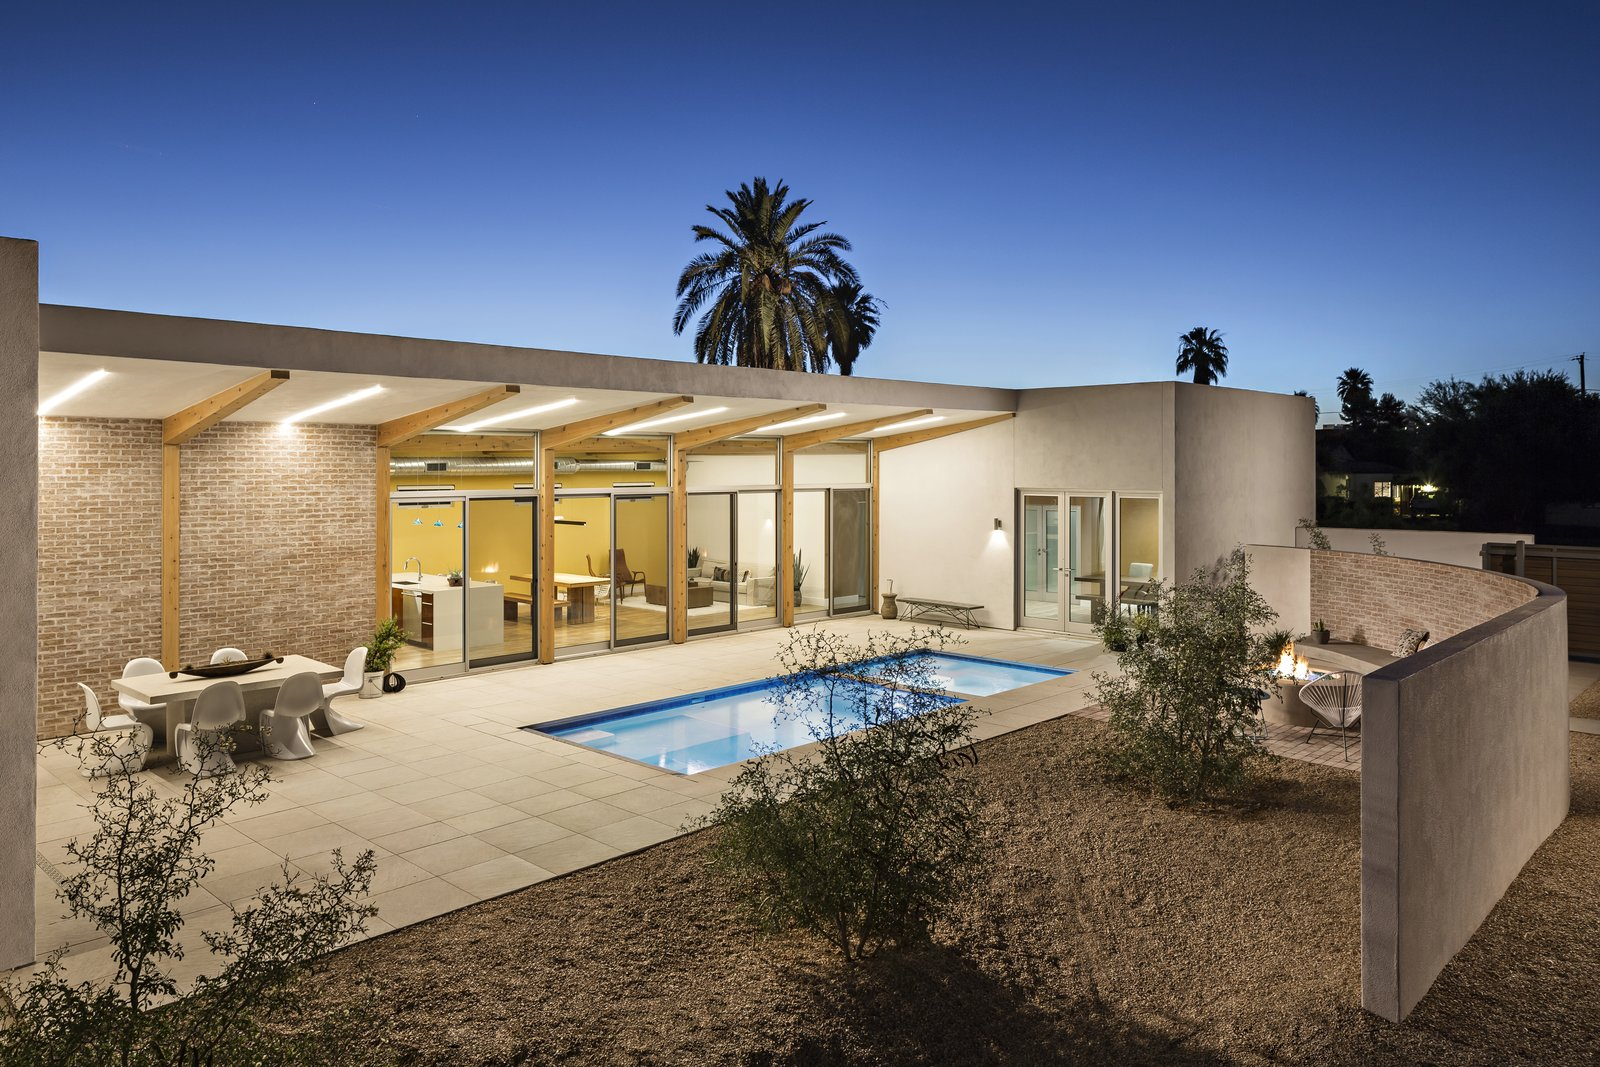 Overall view of the courtyard that extends the livable area of the home Tagged: Outdoor, Side Yard, Desert, Small Pools, Tubs, Shower, and Decomposed Granite Patio, Porch, Deck.  Sol House by The Ranch Mine